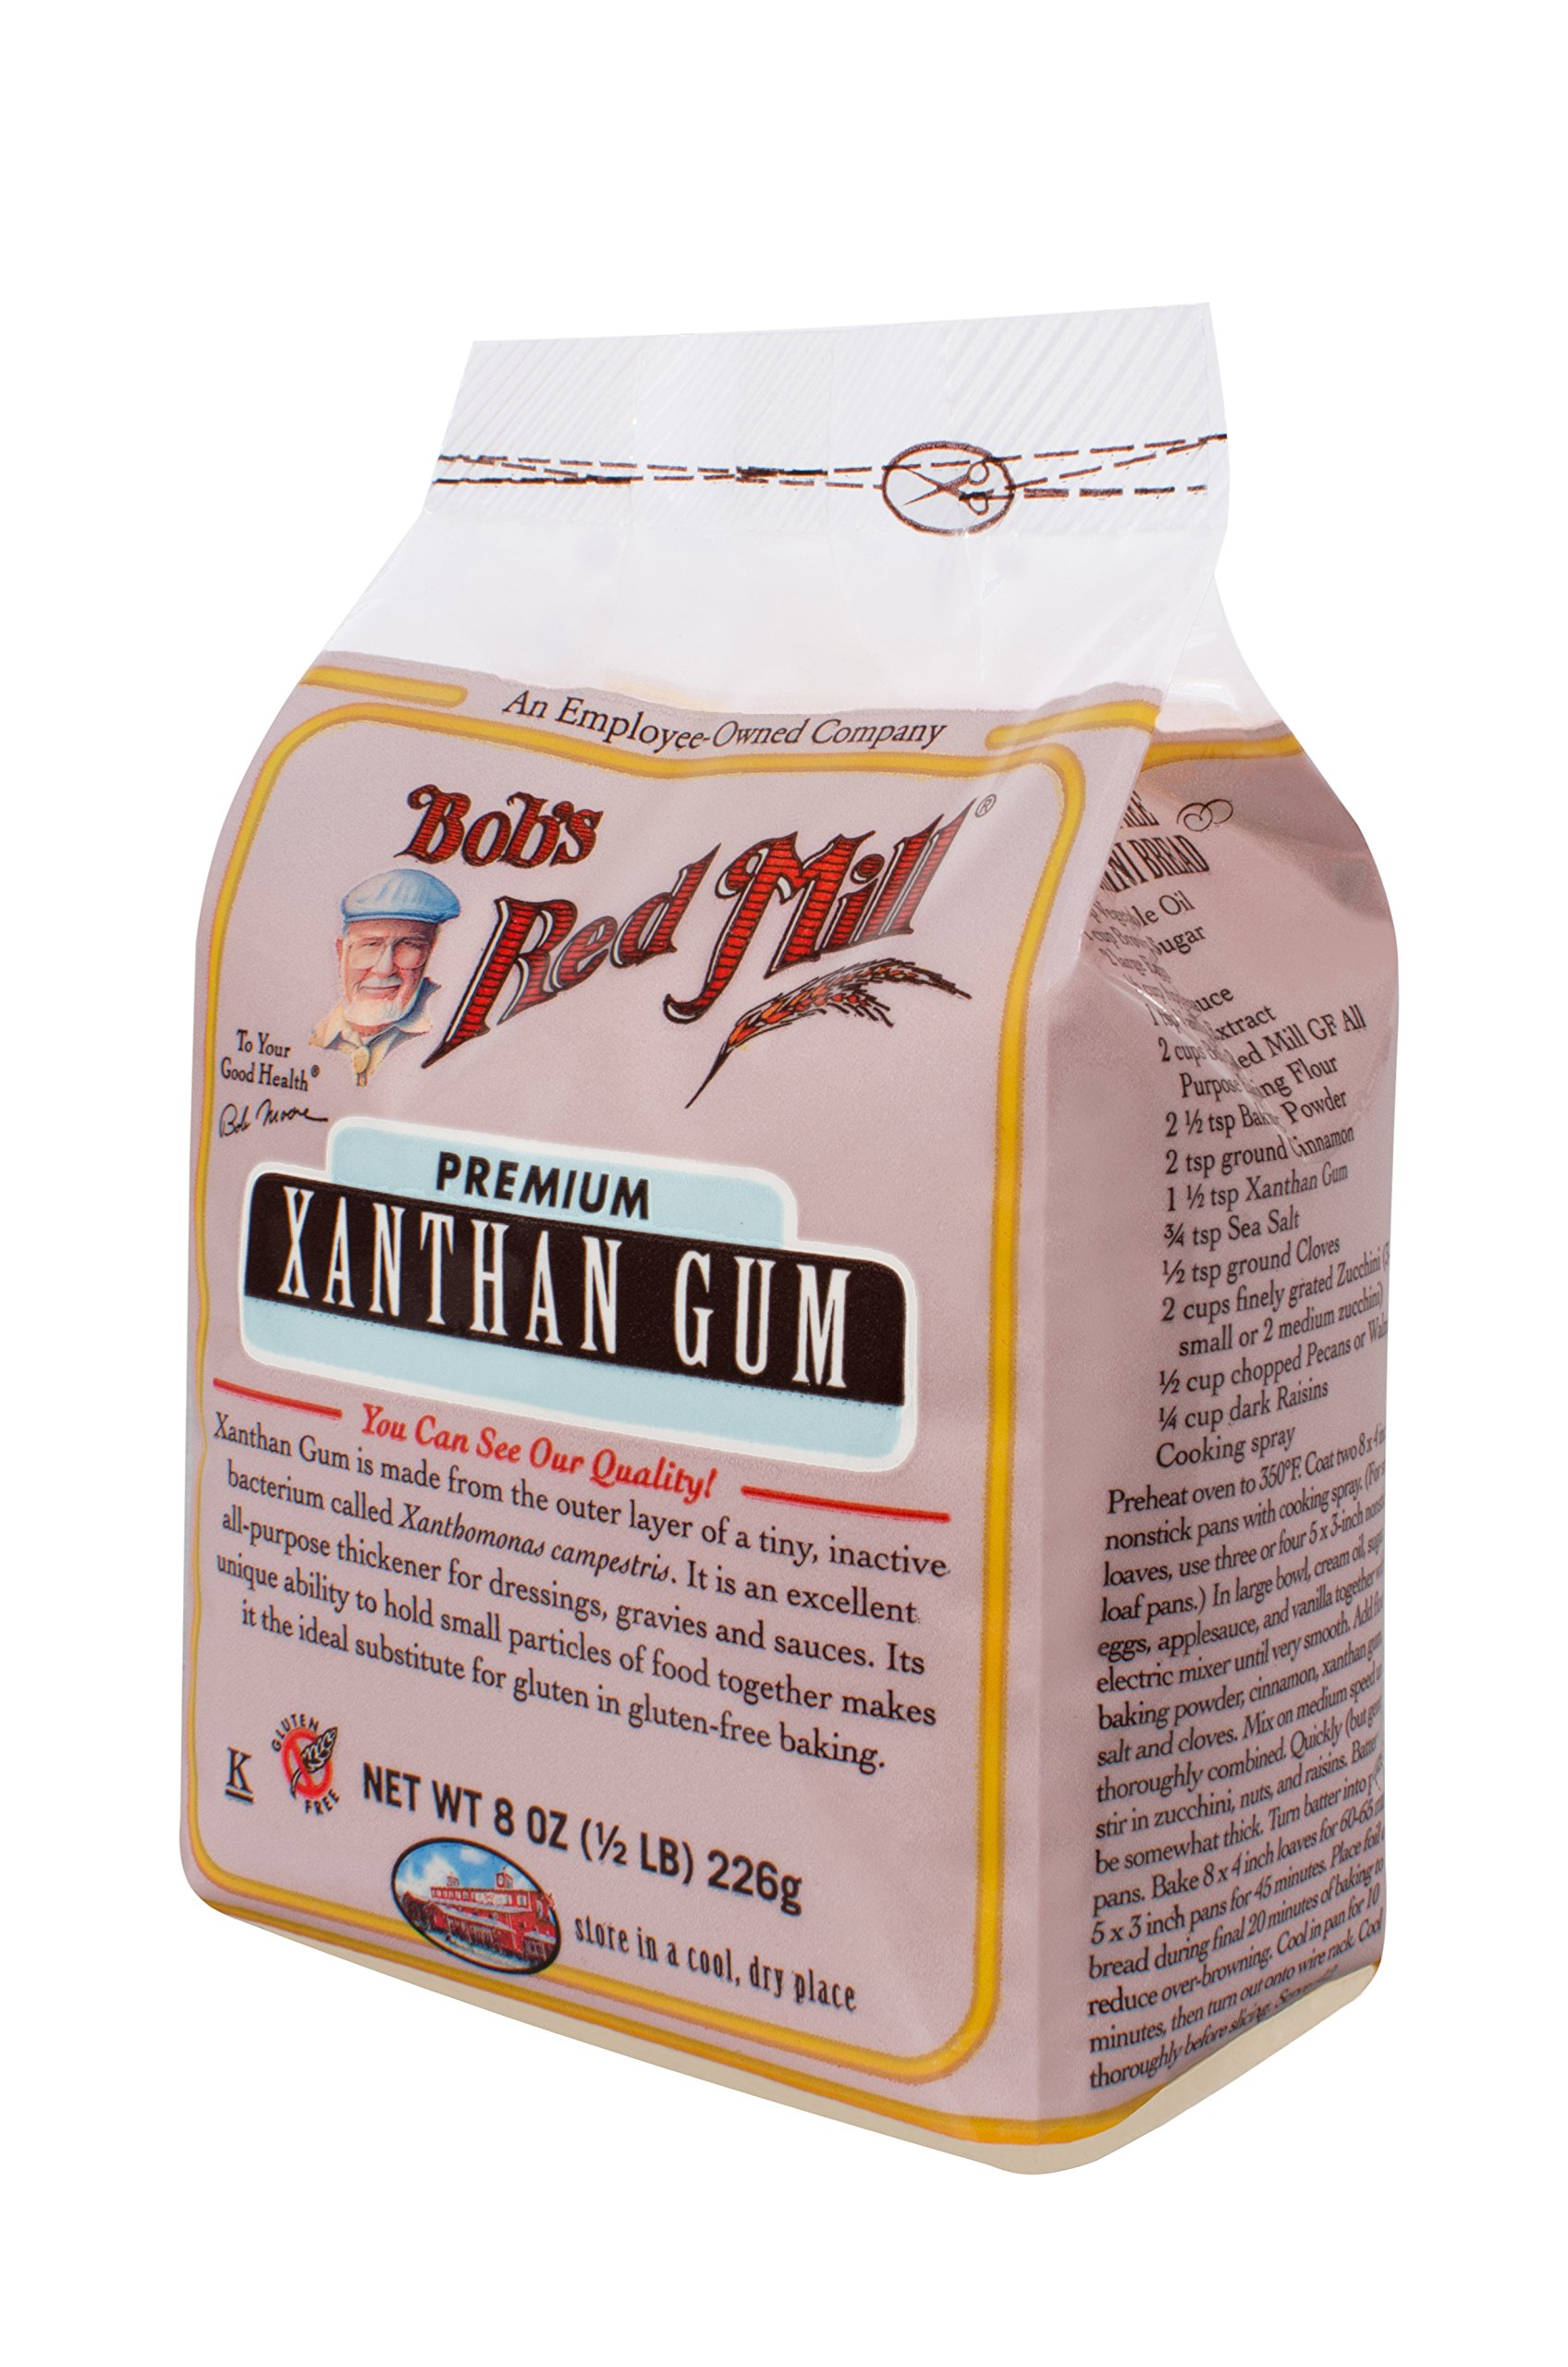 Bob's Red Mill Gluten Free Xanthan Gum, 8-ounce by Bob's Red Mill (Image #5)